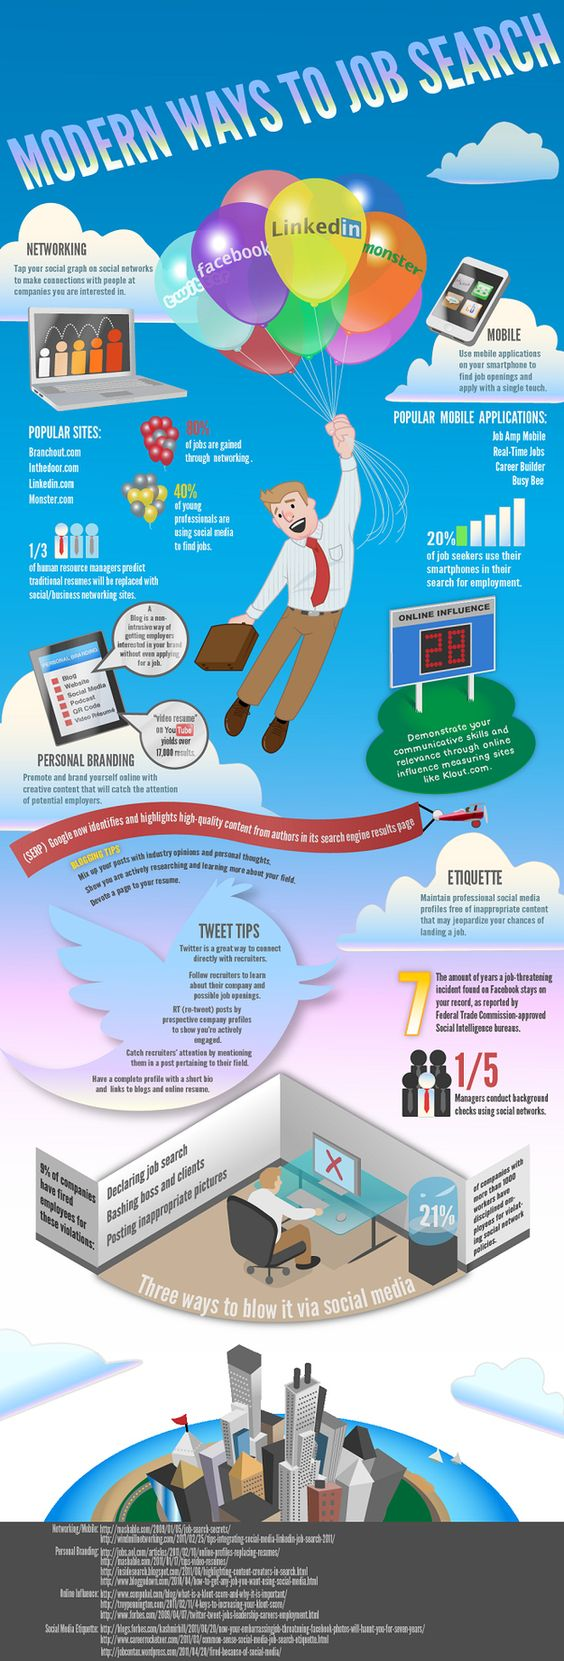 modern ways to job search infographic the modern target and modern ways to job search traditional ways to job search are still valid